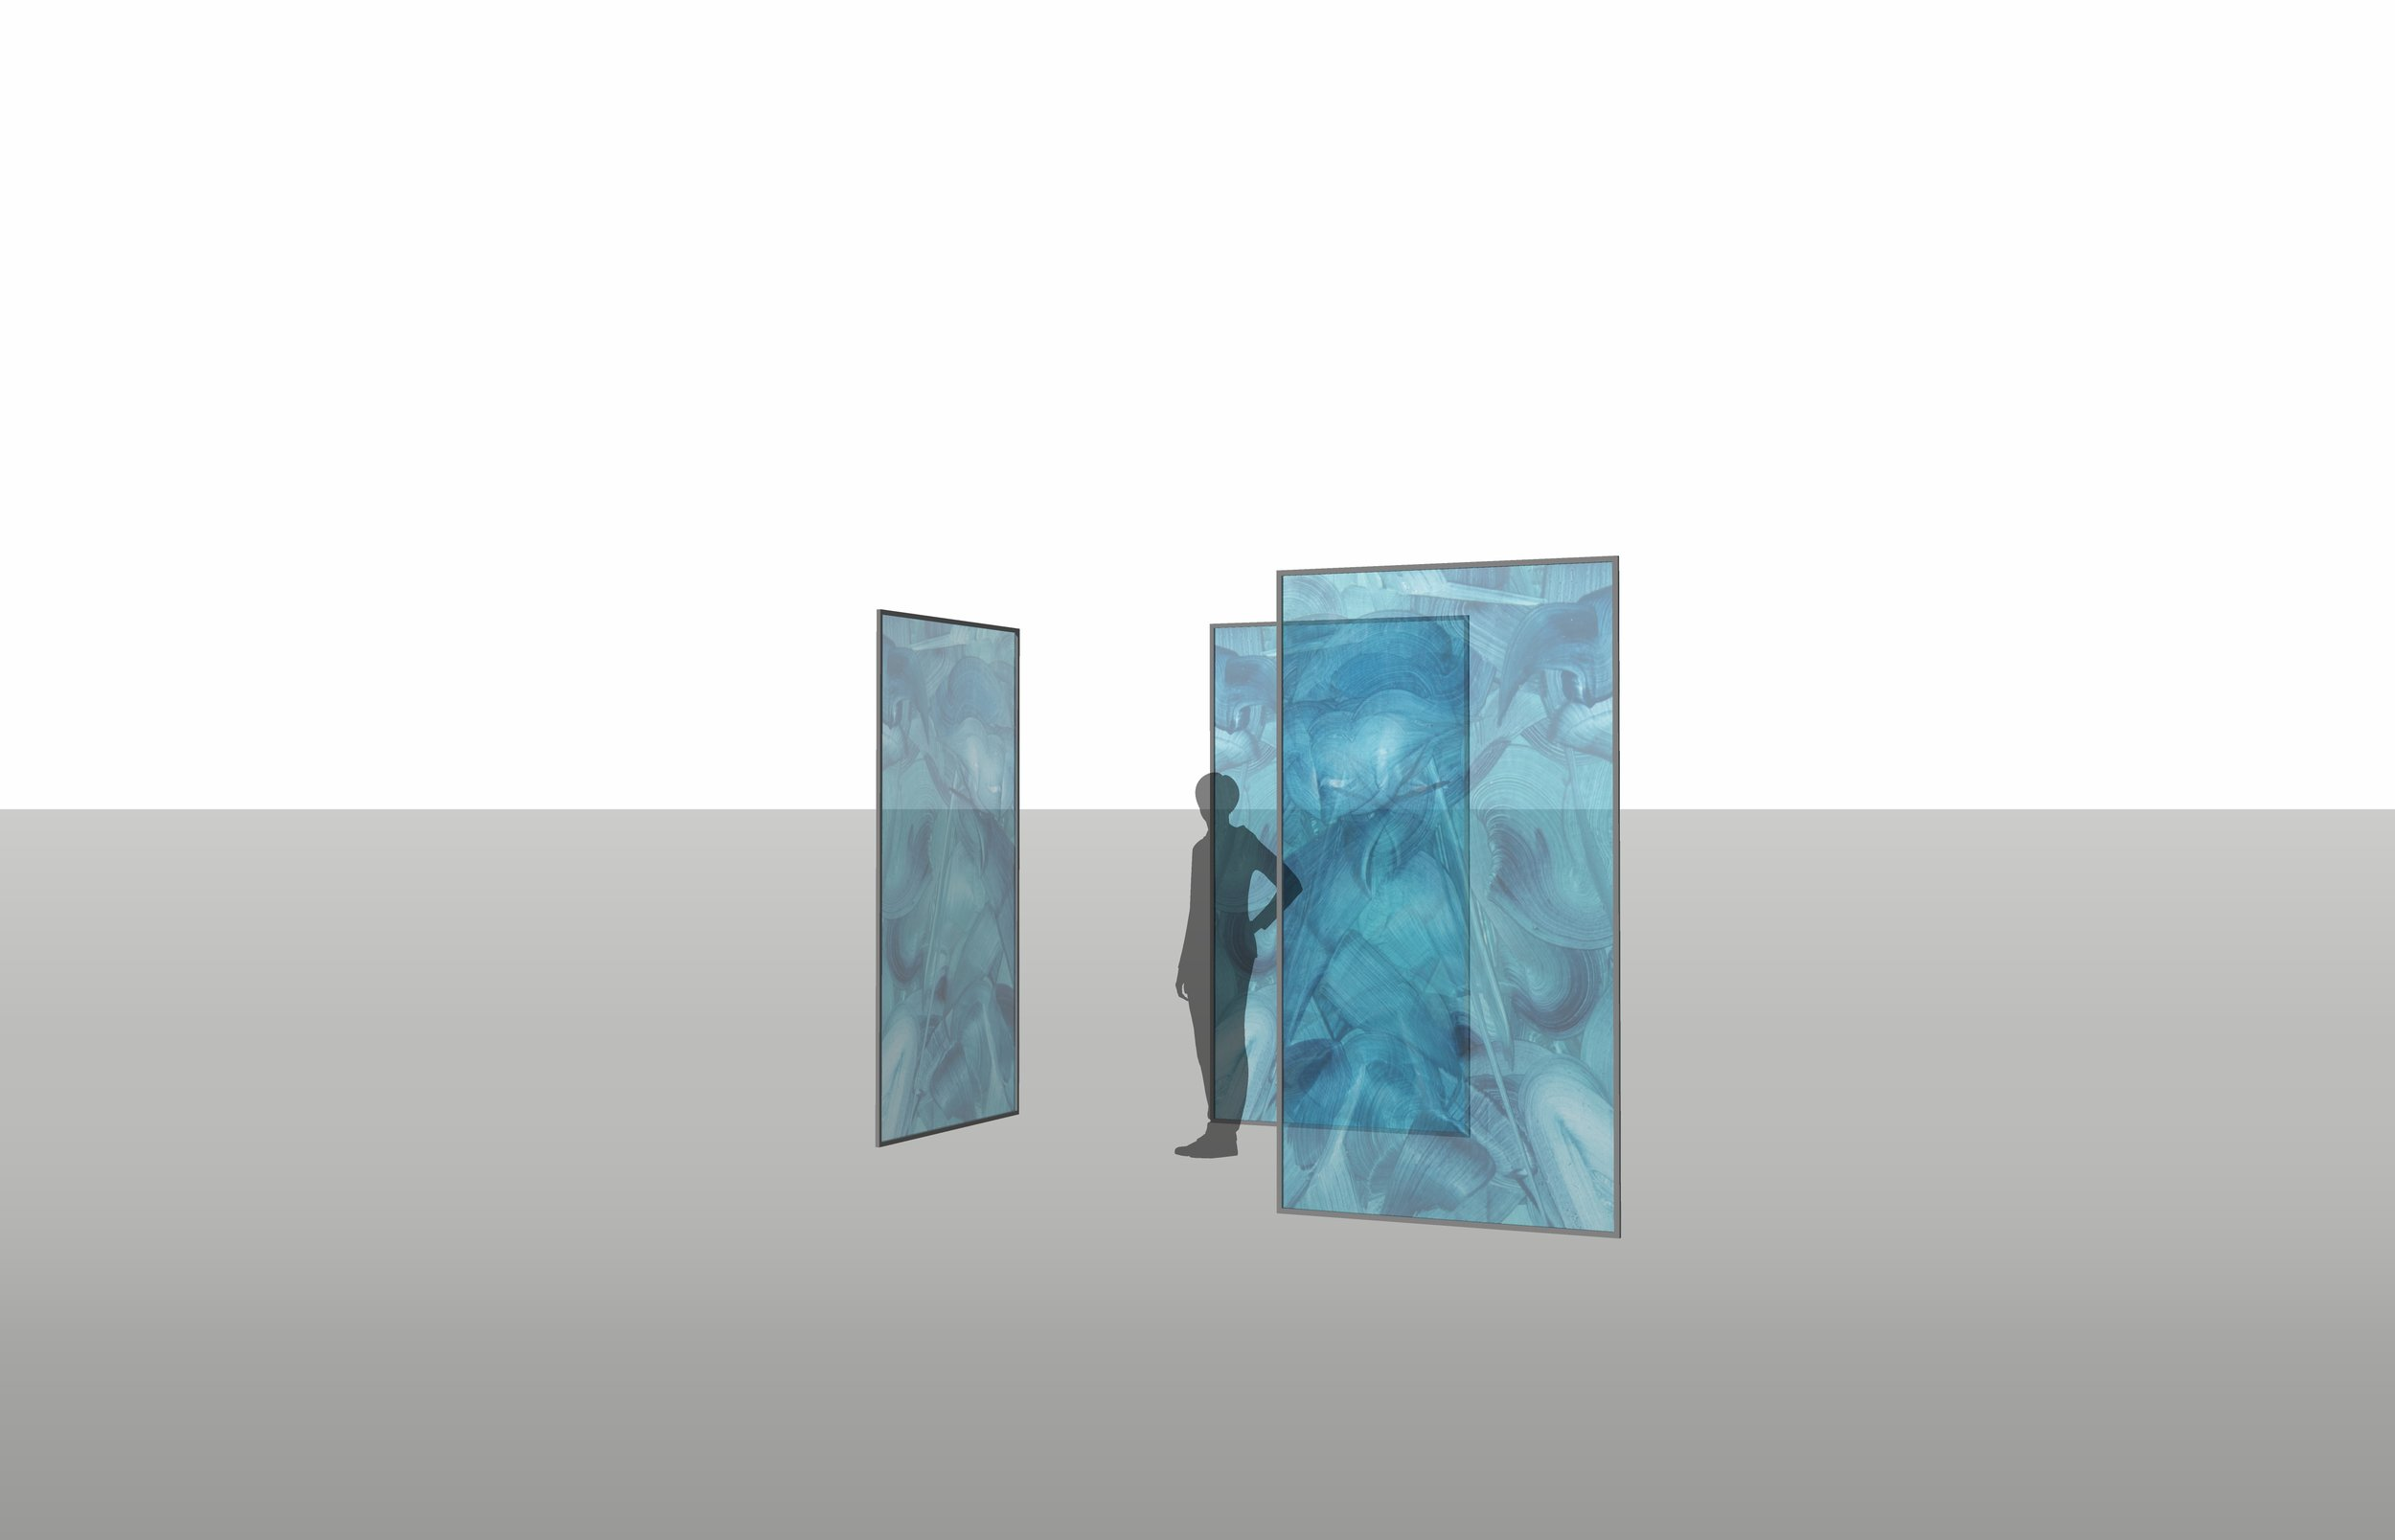 Translucent rear projection screens, free standing in gallery space, viewable from all sides.